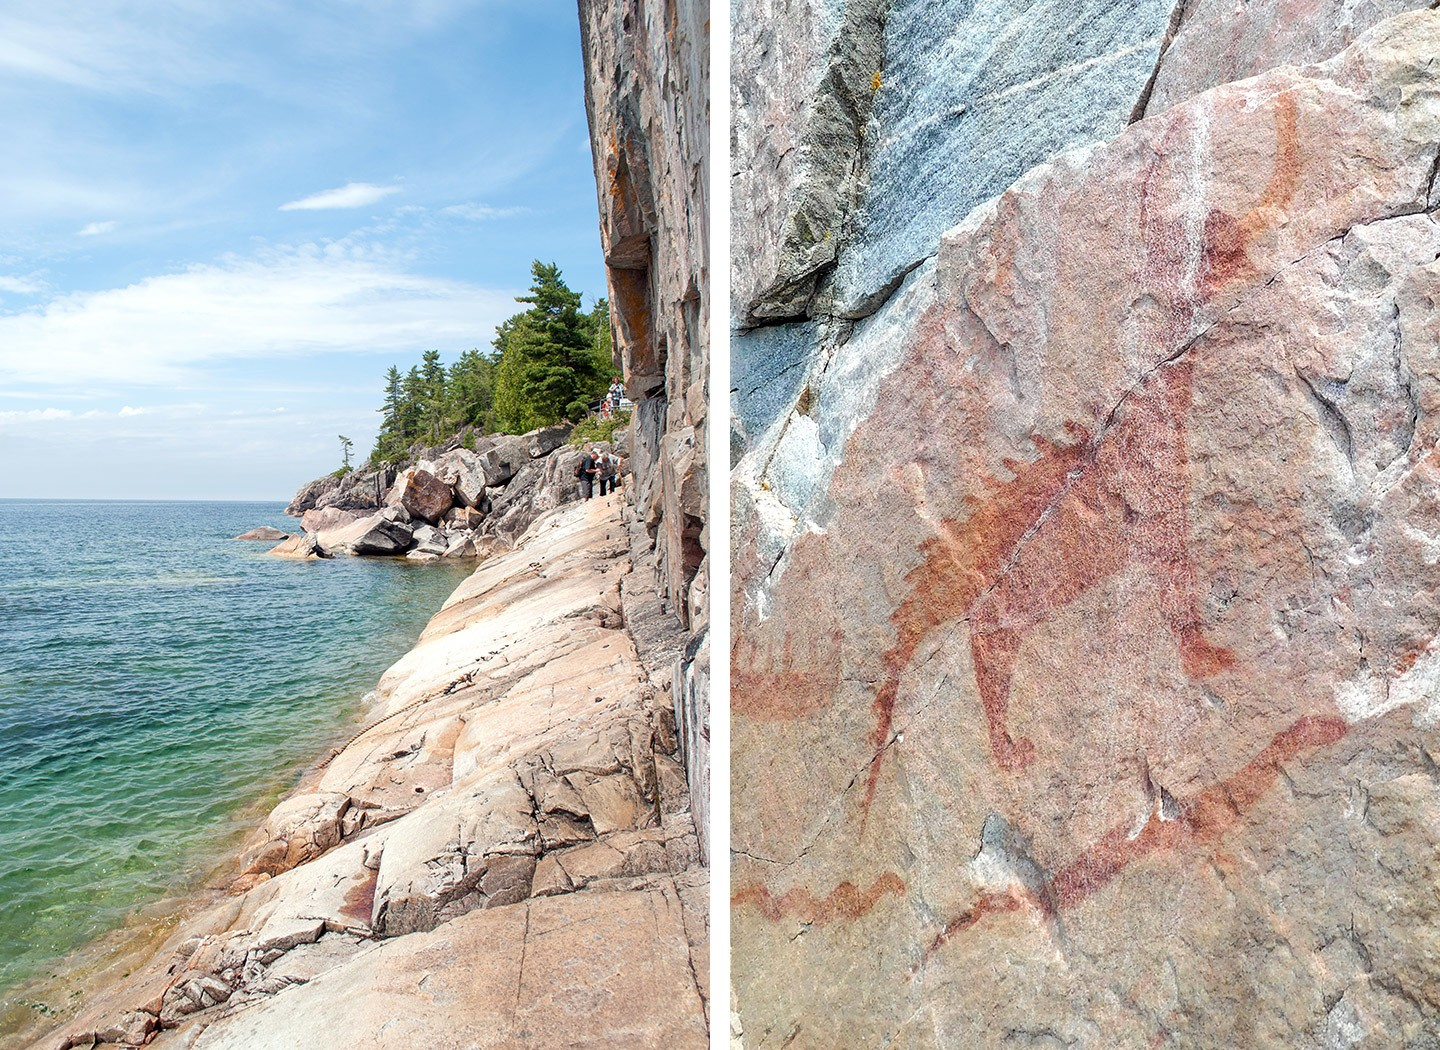 The Agawa Rock Pictographs at Lake Superior in Canada